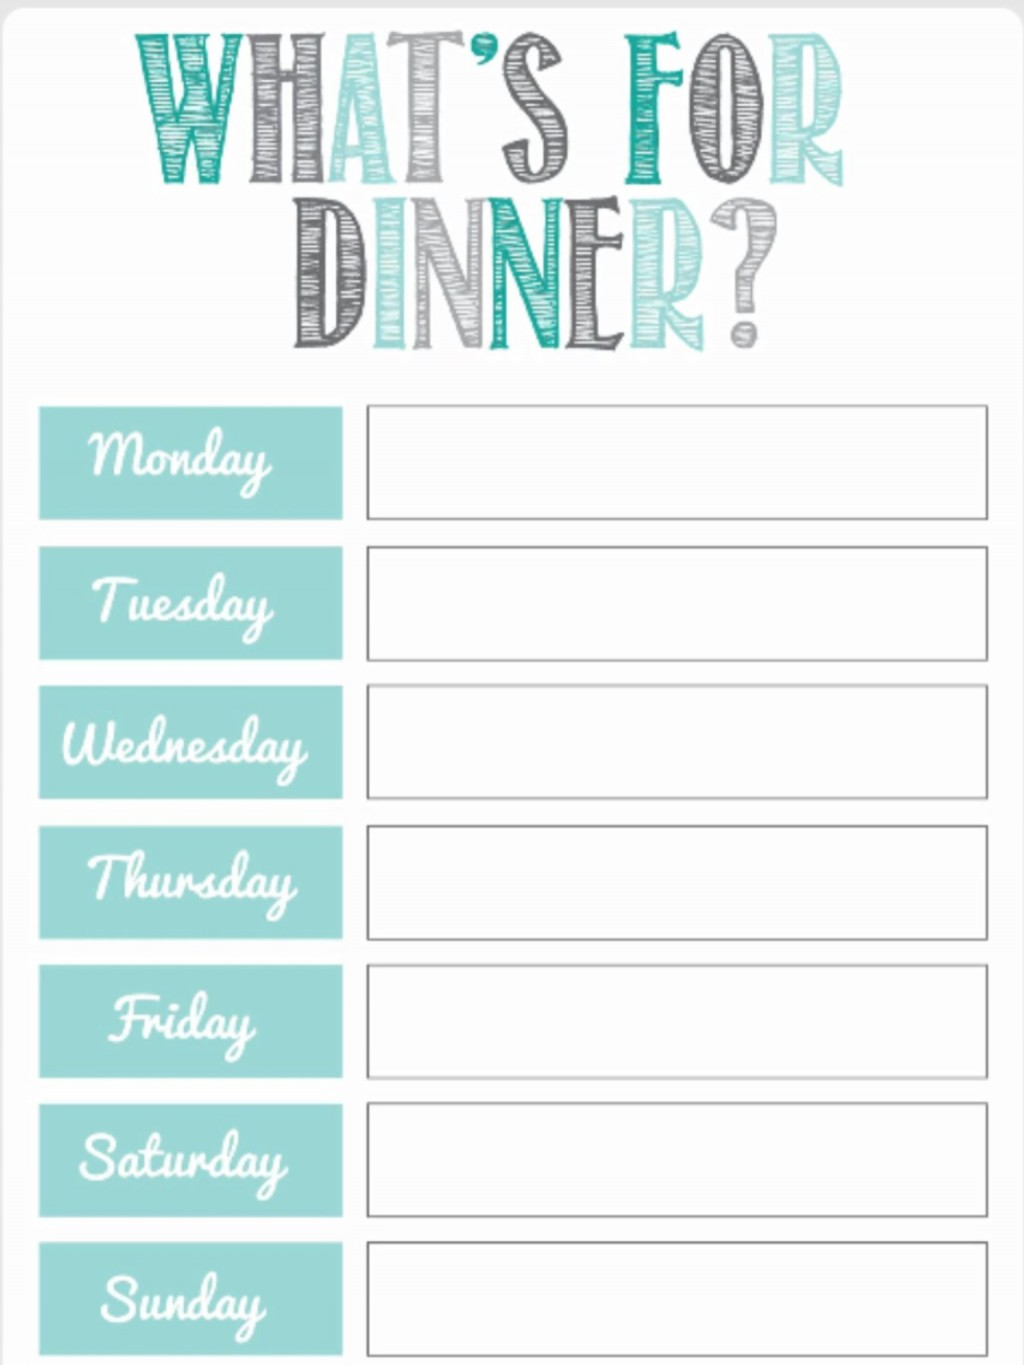 Dinner Free Meal Plan Template  Worksheet Planner For Weight Los ExcelLarge